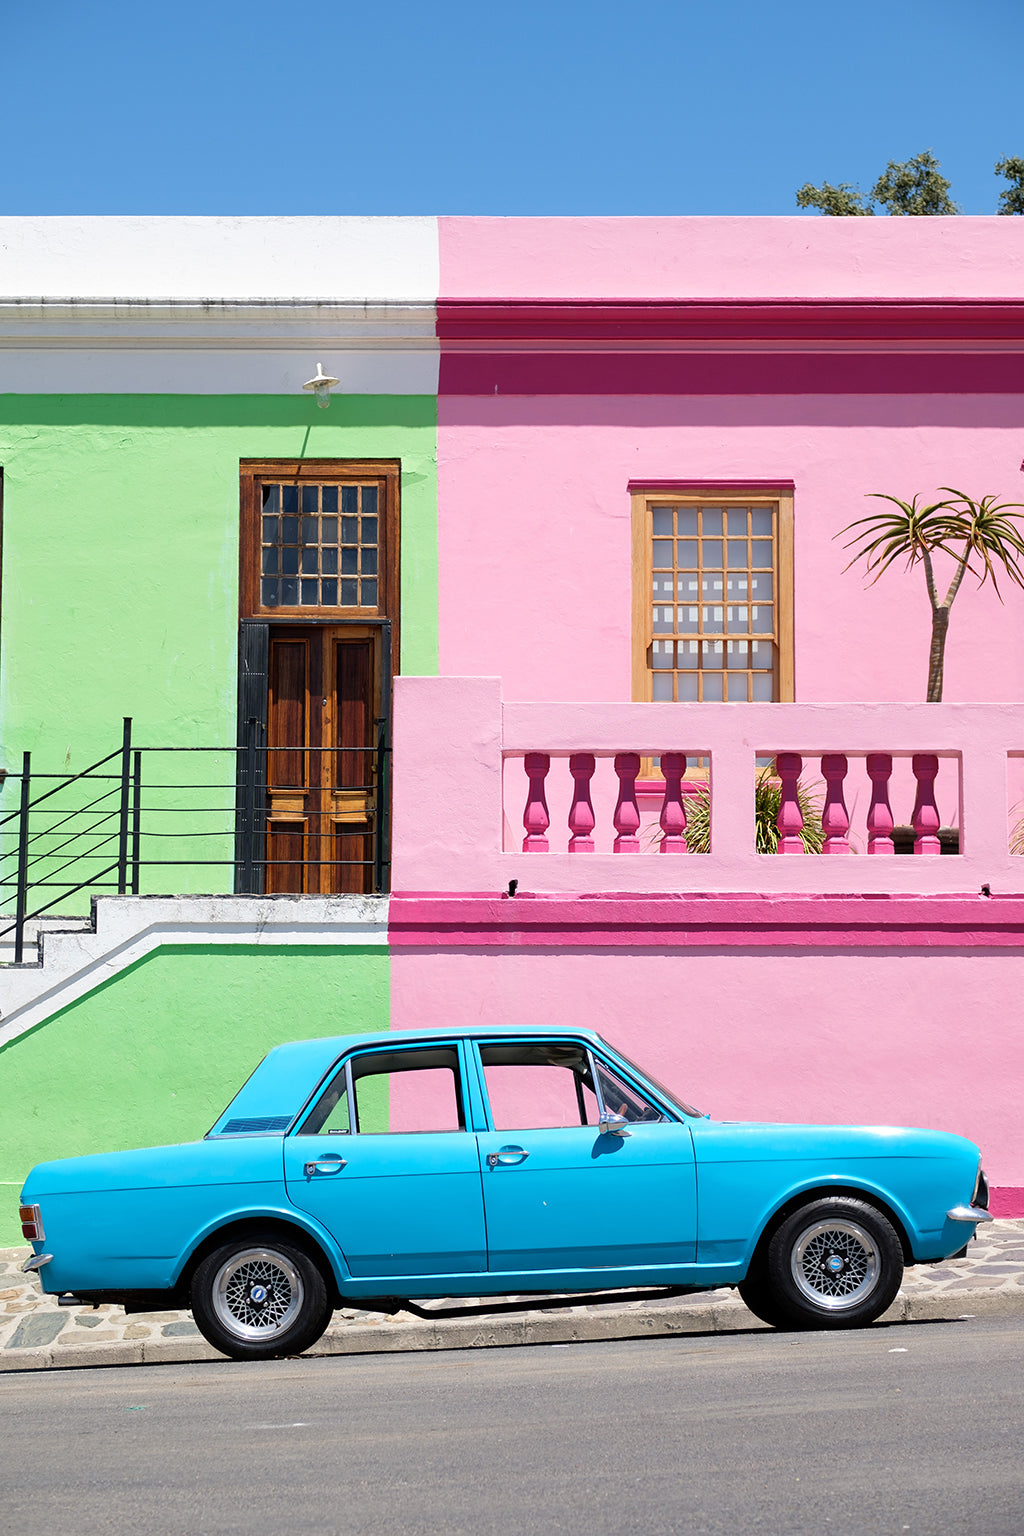 Safari Journal / Blog by Safari Fusion | Colour blocking Bo-Kaap | Colourful houses of Cape Town's Cape Malay Quarter | Photographer Arno Smit via Unsplash